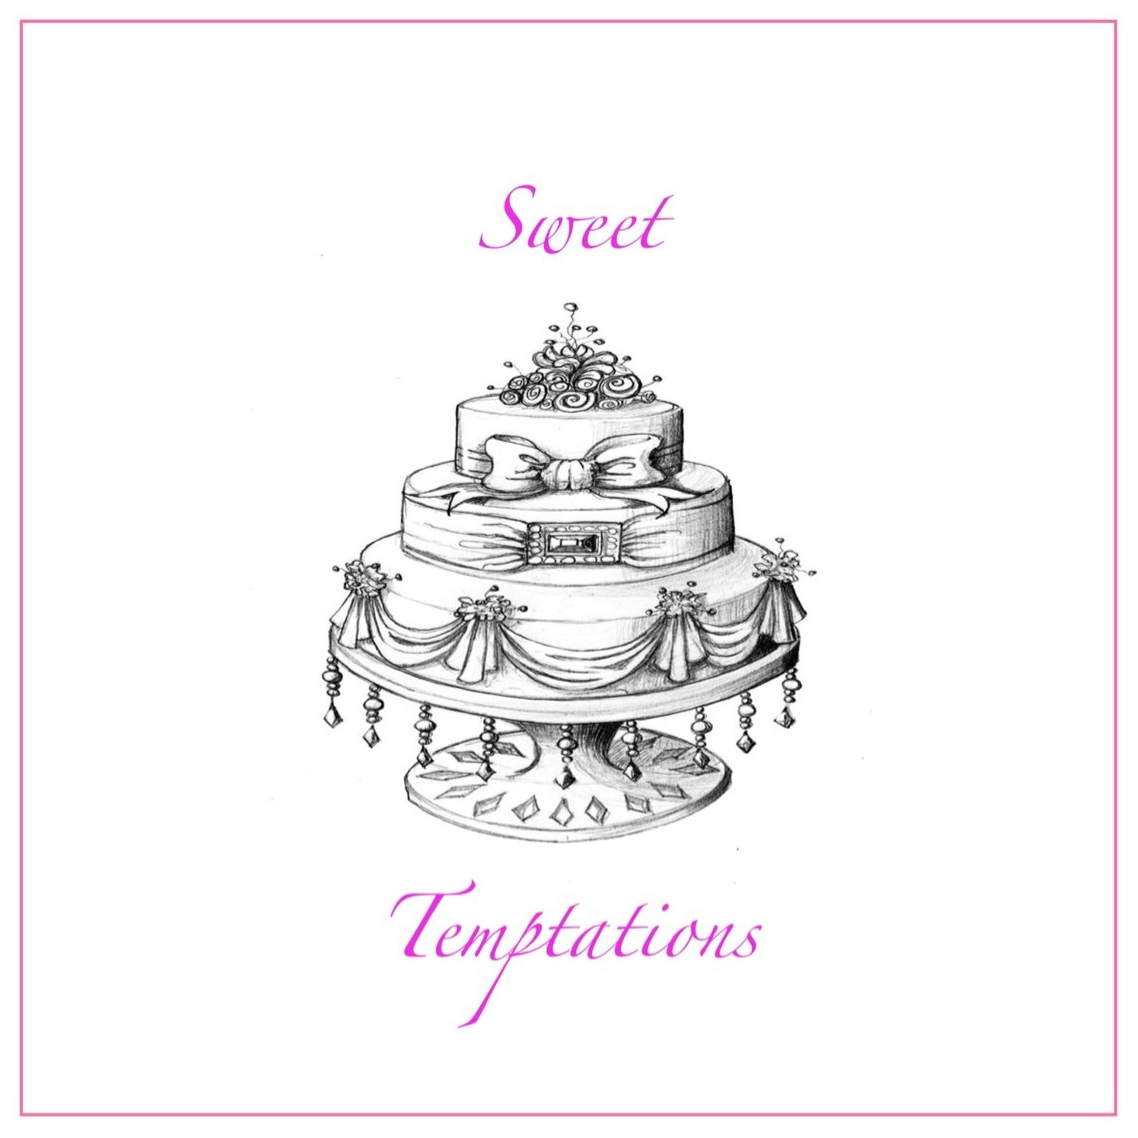 Sweet Temptations - Award winning cake designer. Bespoke wedding and events cakes based in glorious North Cornwall, but covering the whole South West, South East and London.